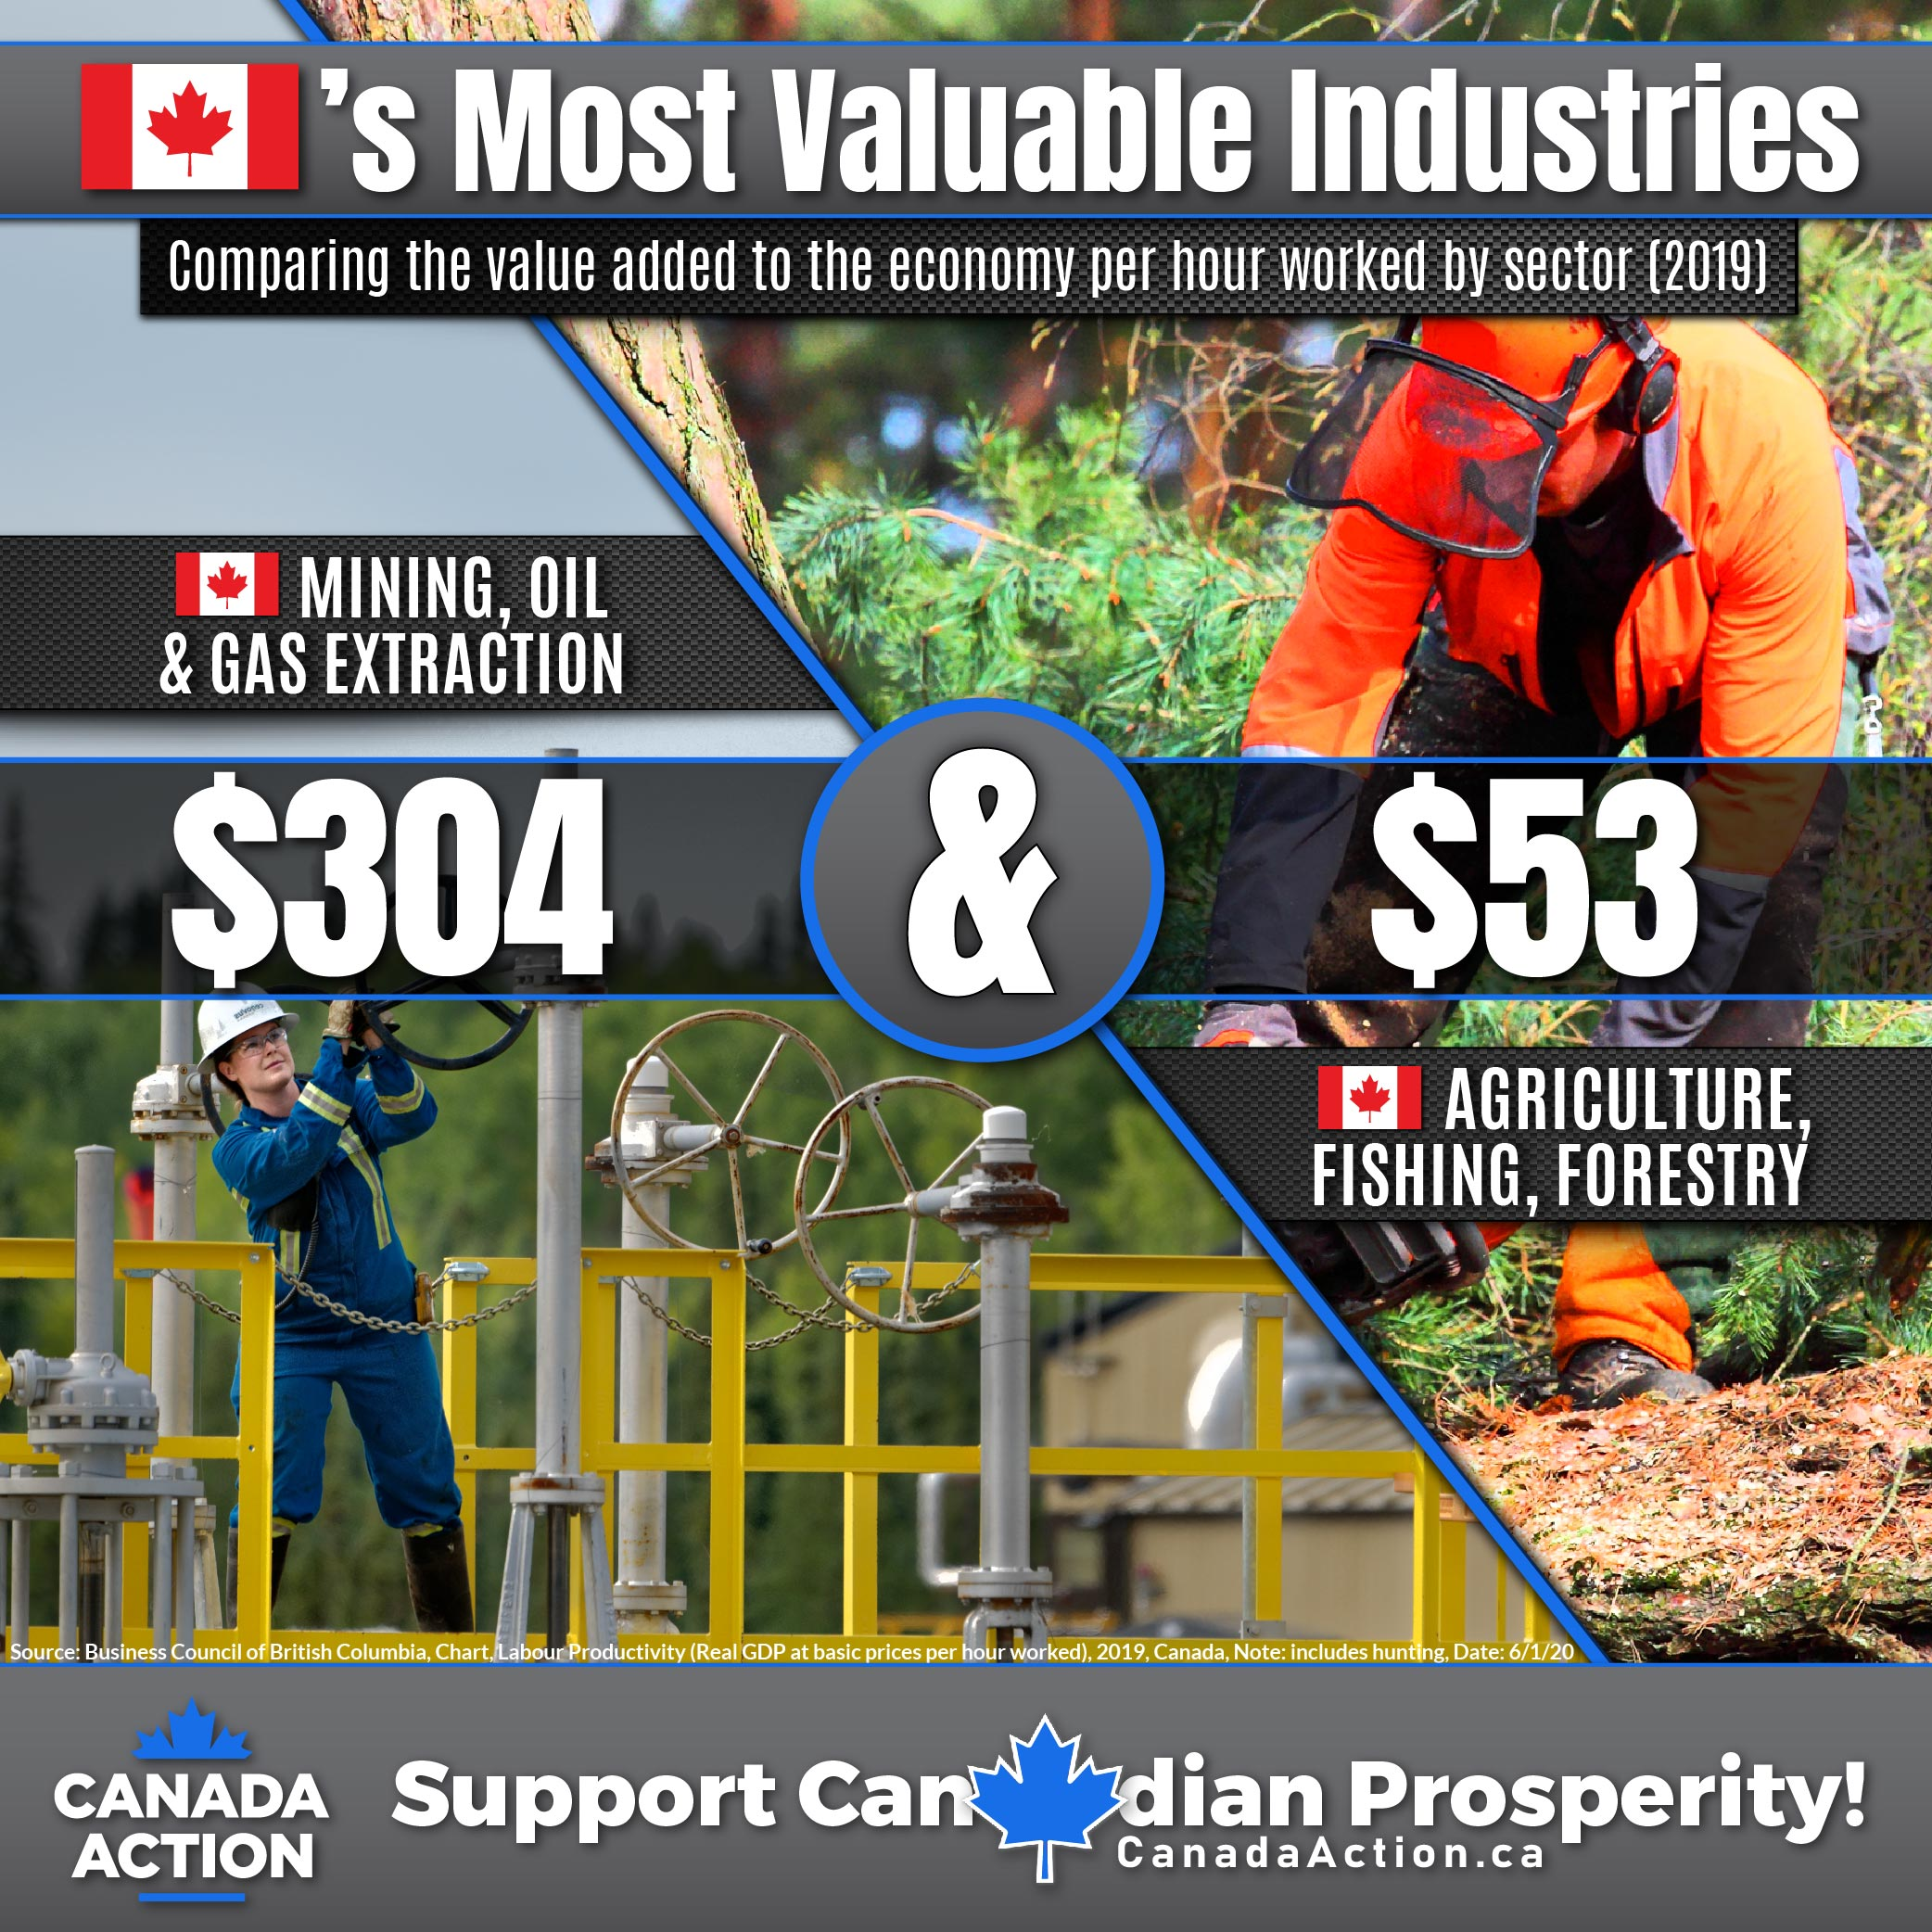 Canada labour productivity mining oil and gas extraction agiculture fishing forestry hunting